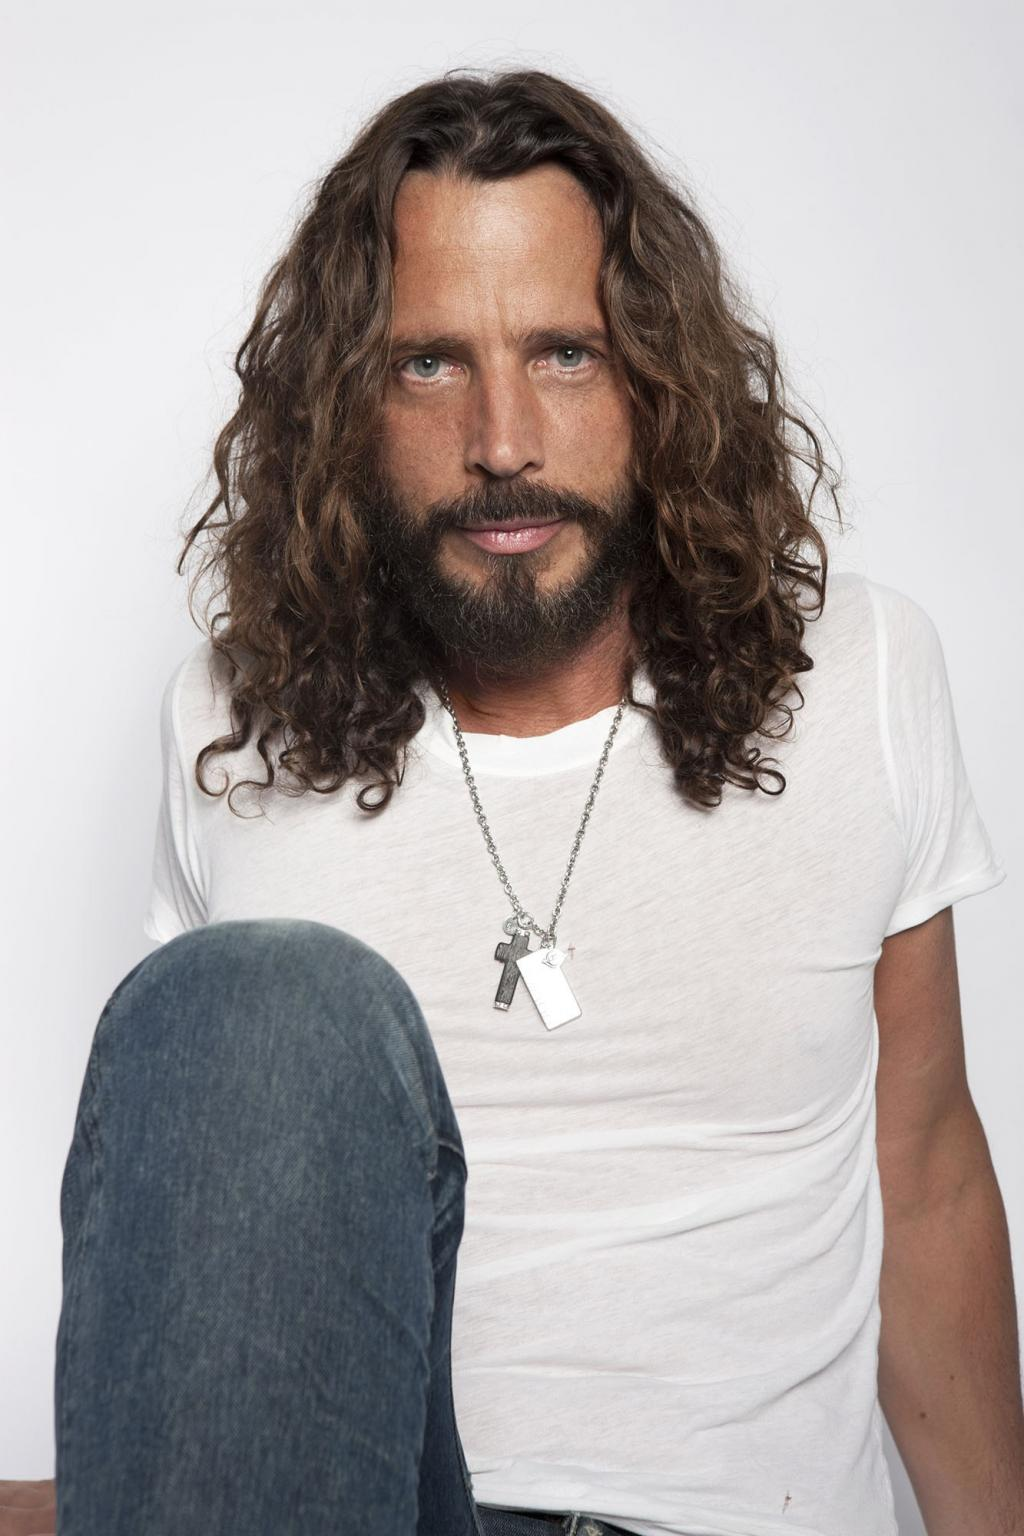 Chris Cornell Wasn't Suicidal in the Days Leading Up to His Death: Family Source